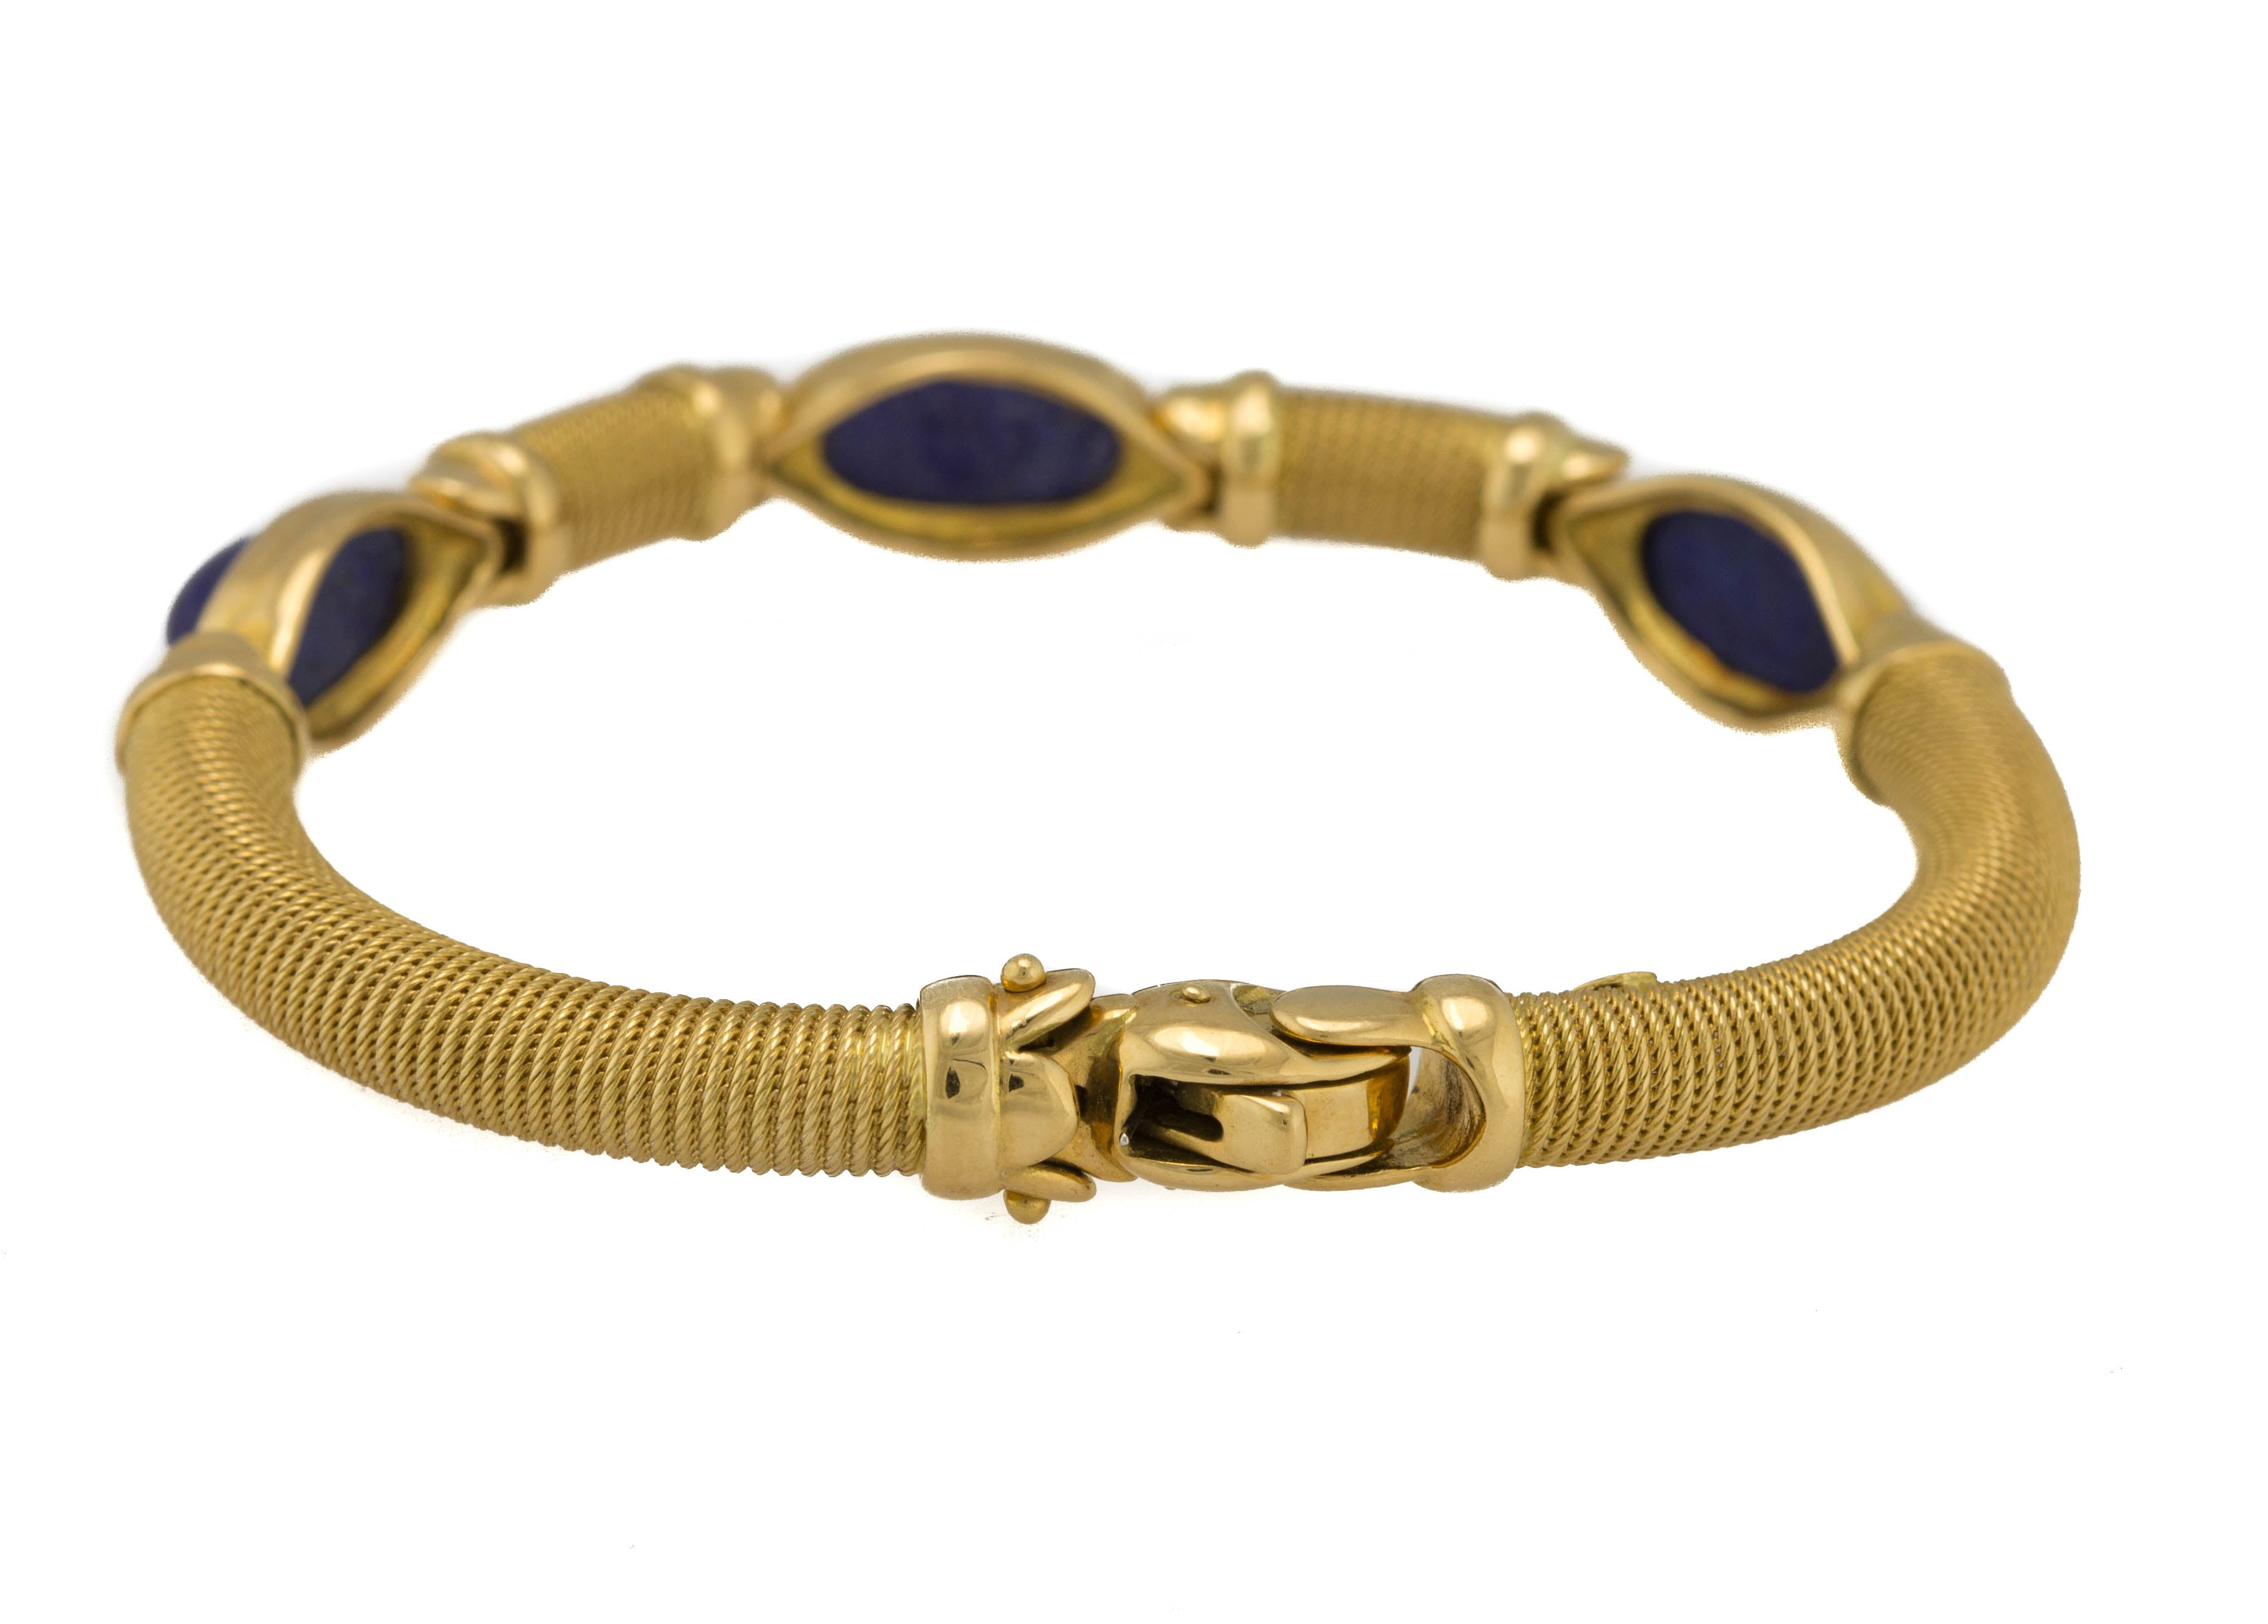 Lovely Ladies Italian Vintage Estate 18K 750 Yellow Gold Lapis Lazuli Bracelet